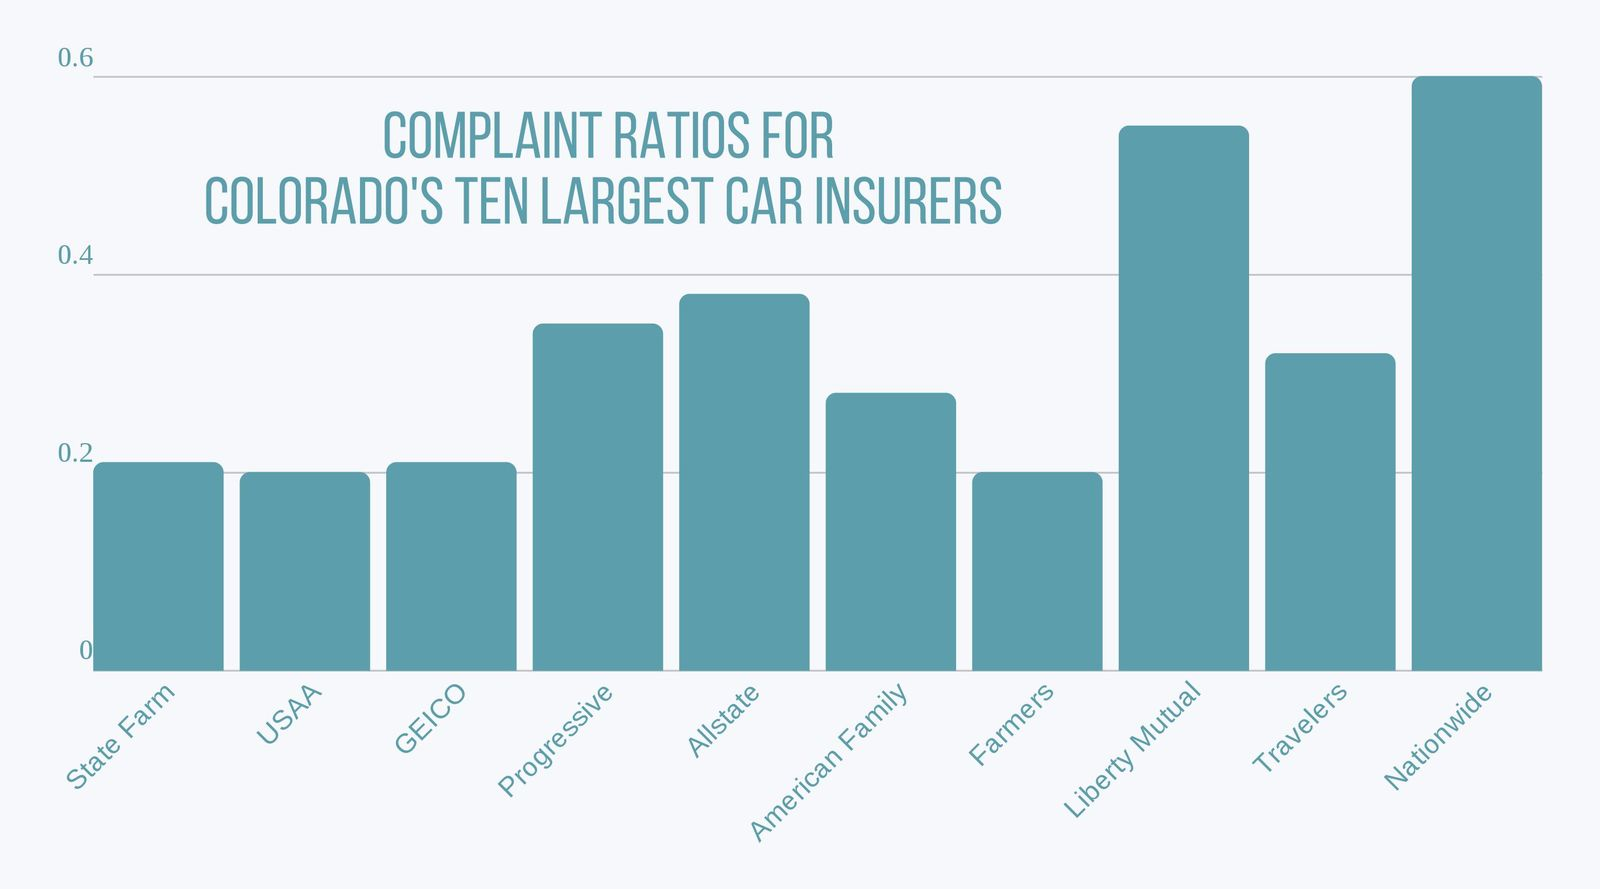 Colorado Complaint Ratios